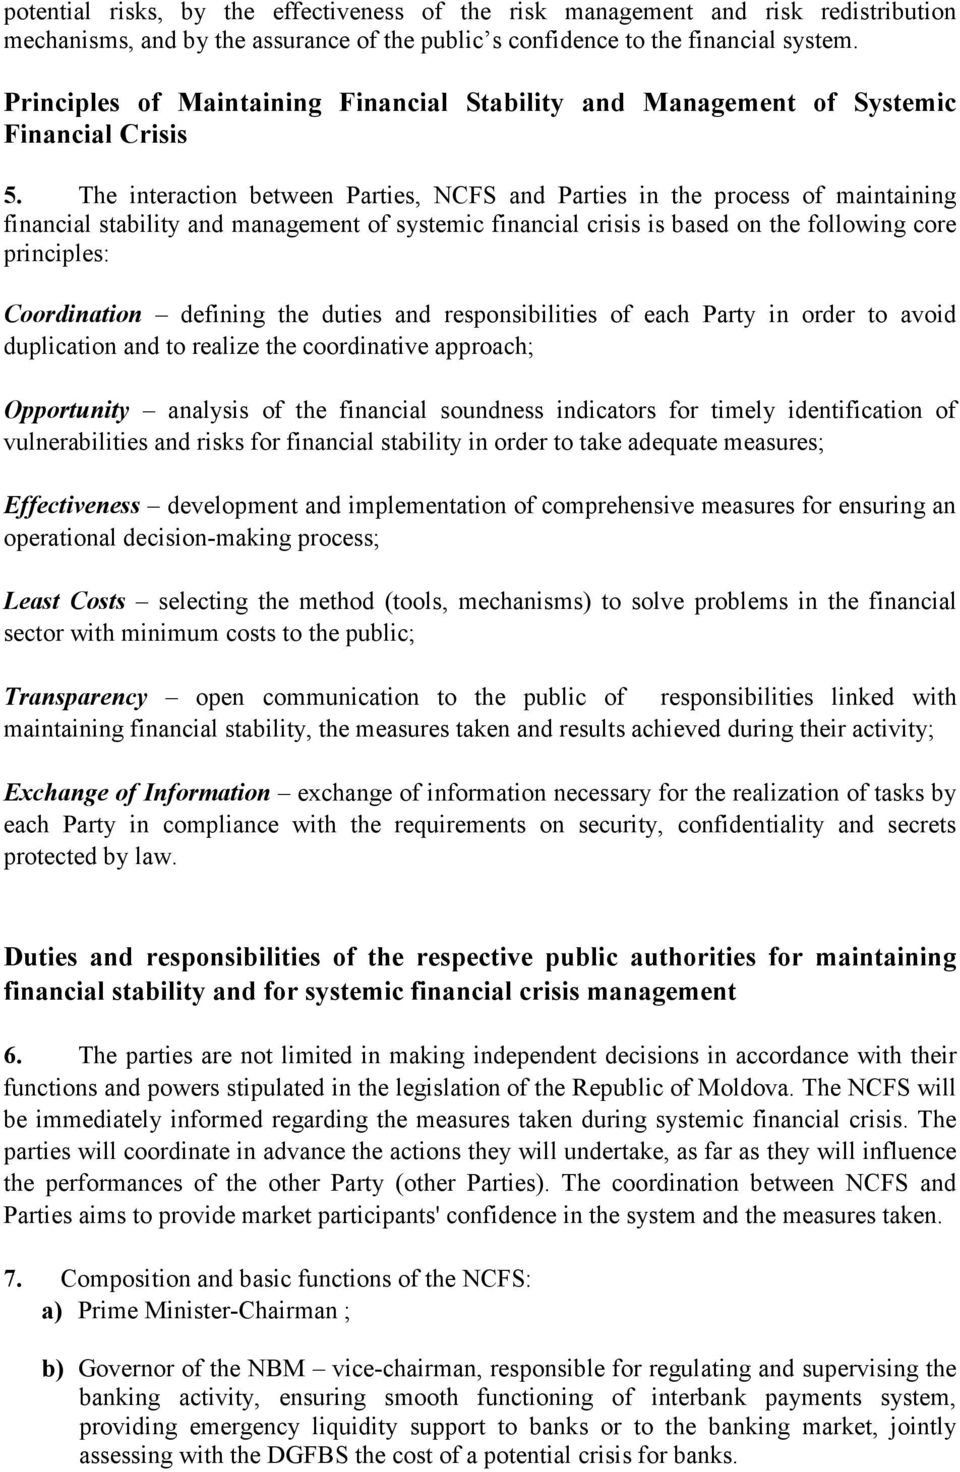 The interaction between Parties, NCFS and Parties in the process of maintaining financial stability and management of systemic financial crisis is based on the following core principles: Coordination